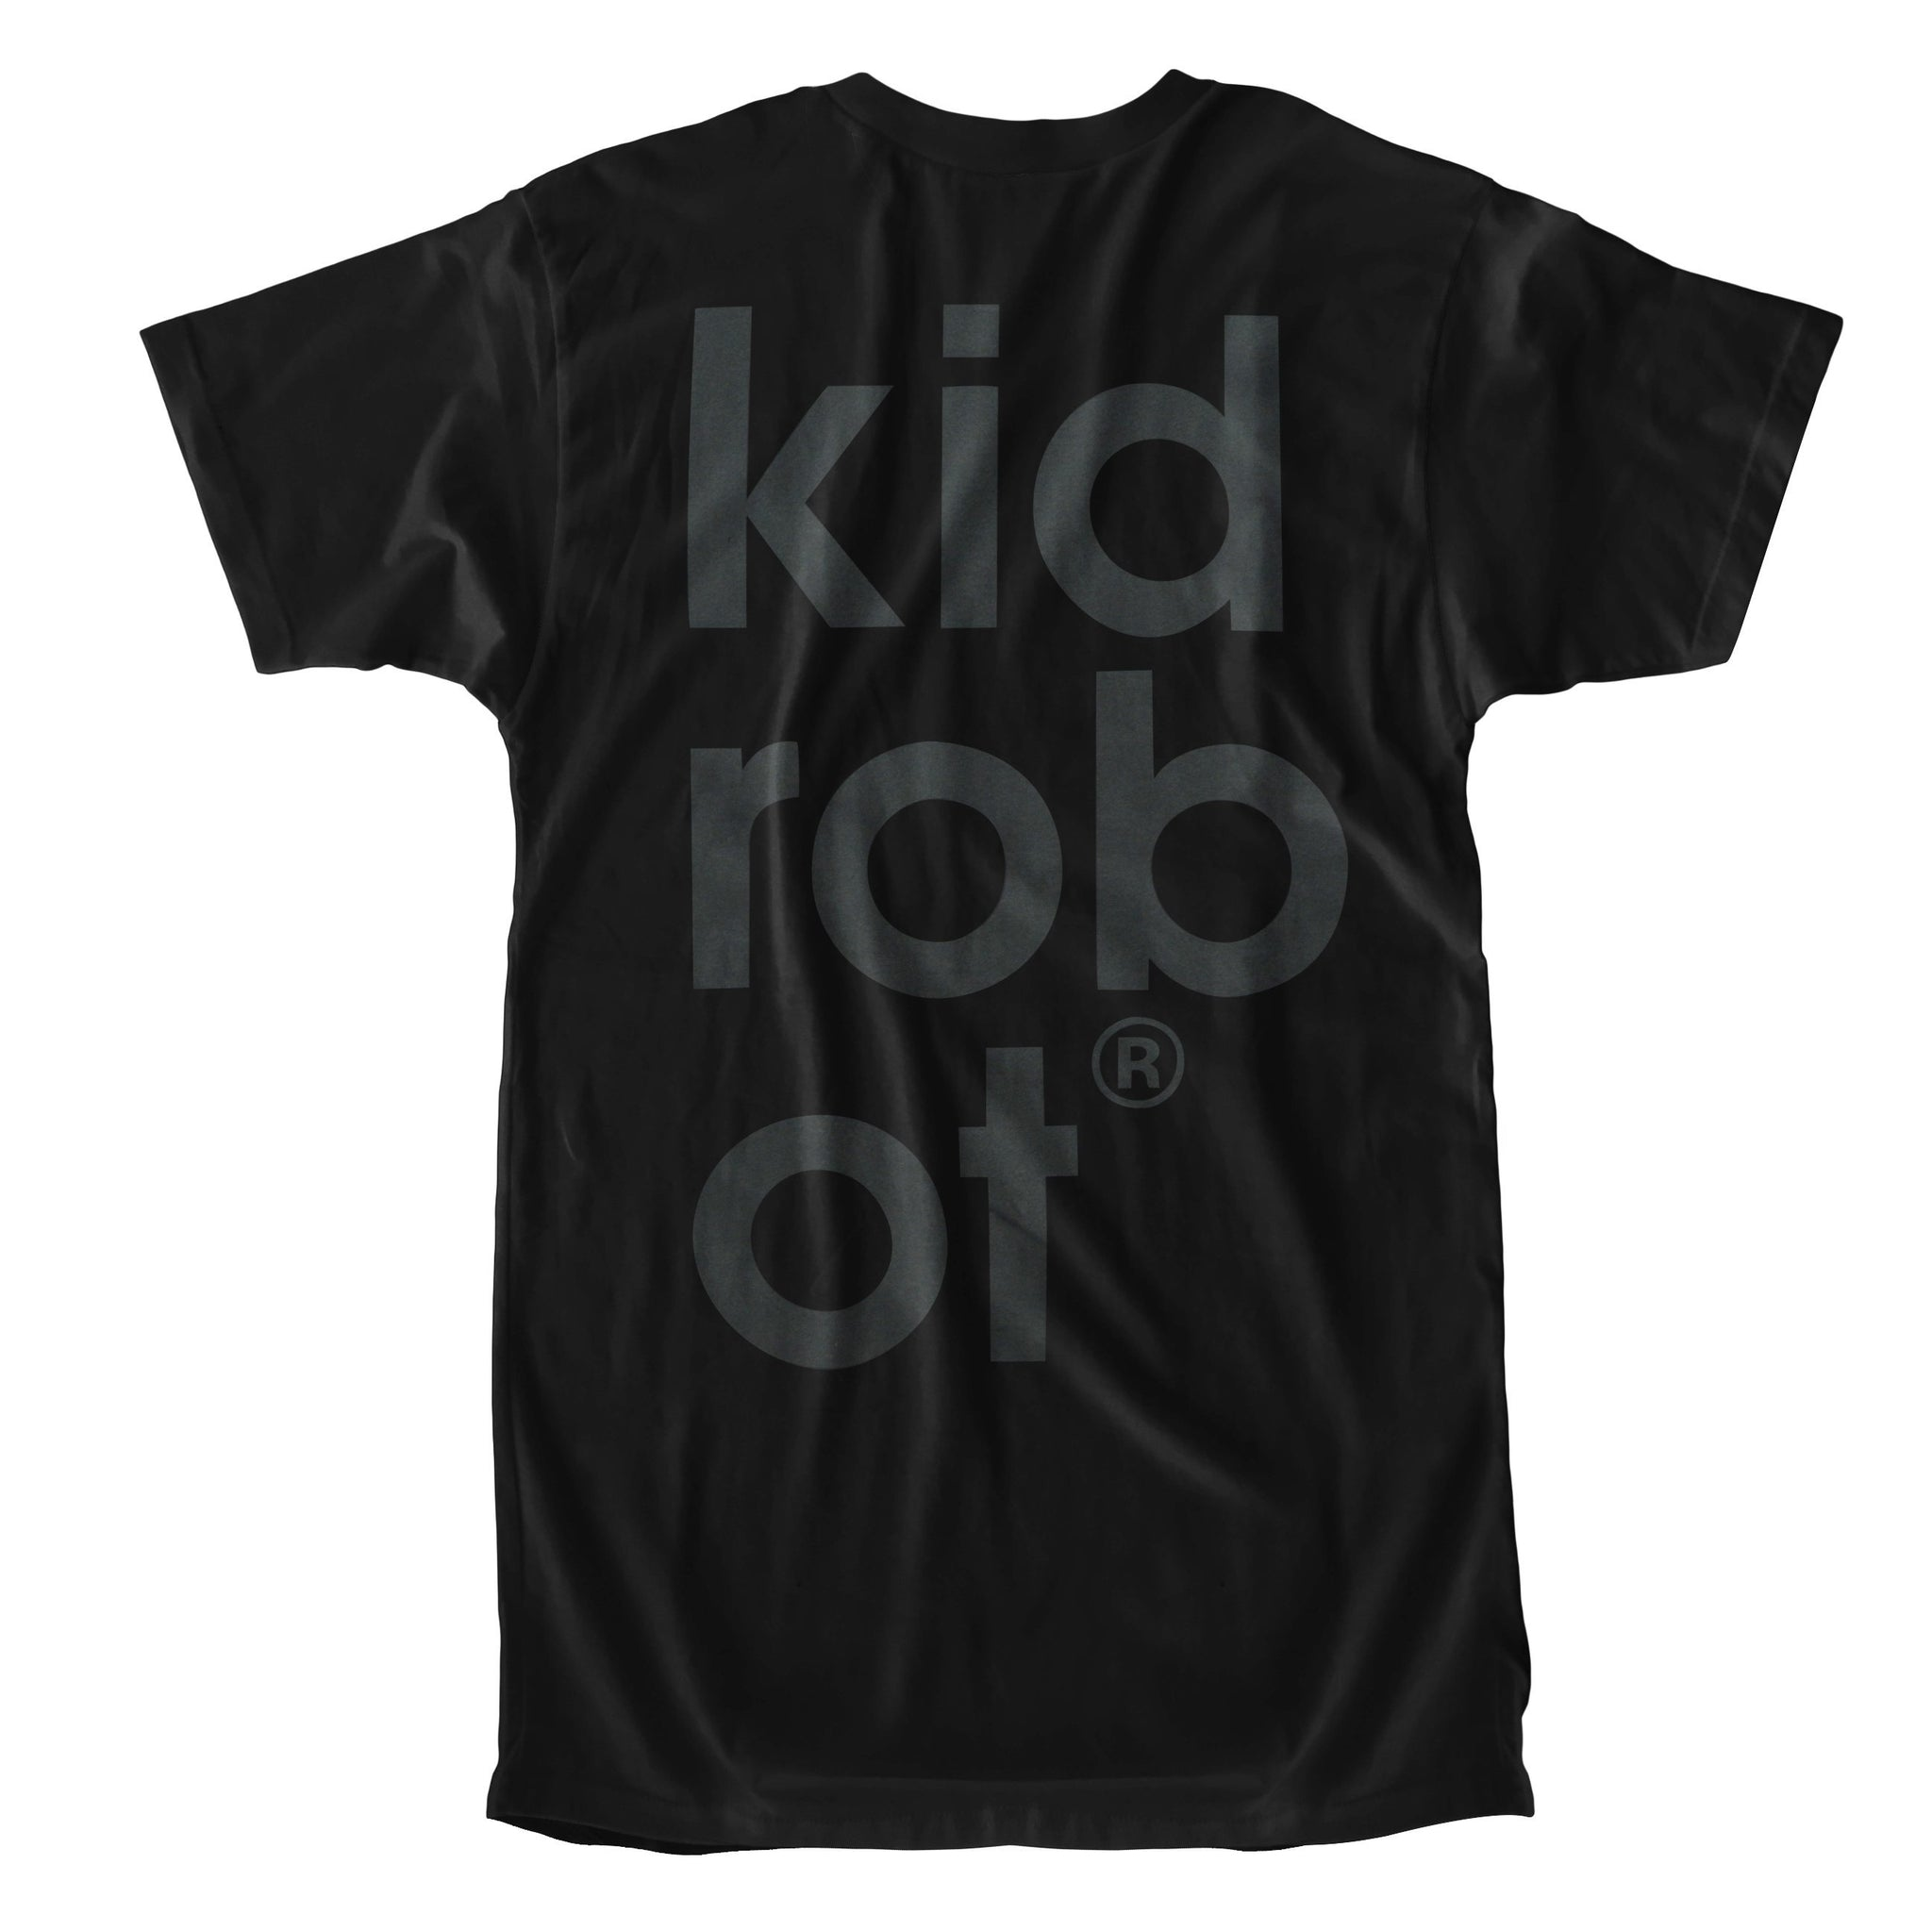 Limited Edition Kidrobot BOTS Black on Black T-Shirt (S-XXL) - Kidrobot - Designer Art Toys